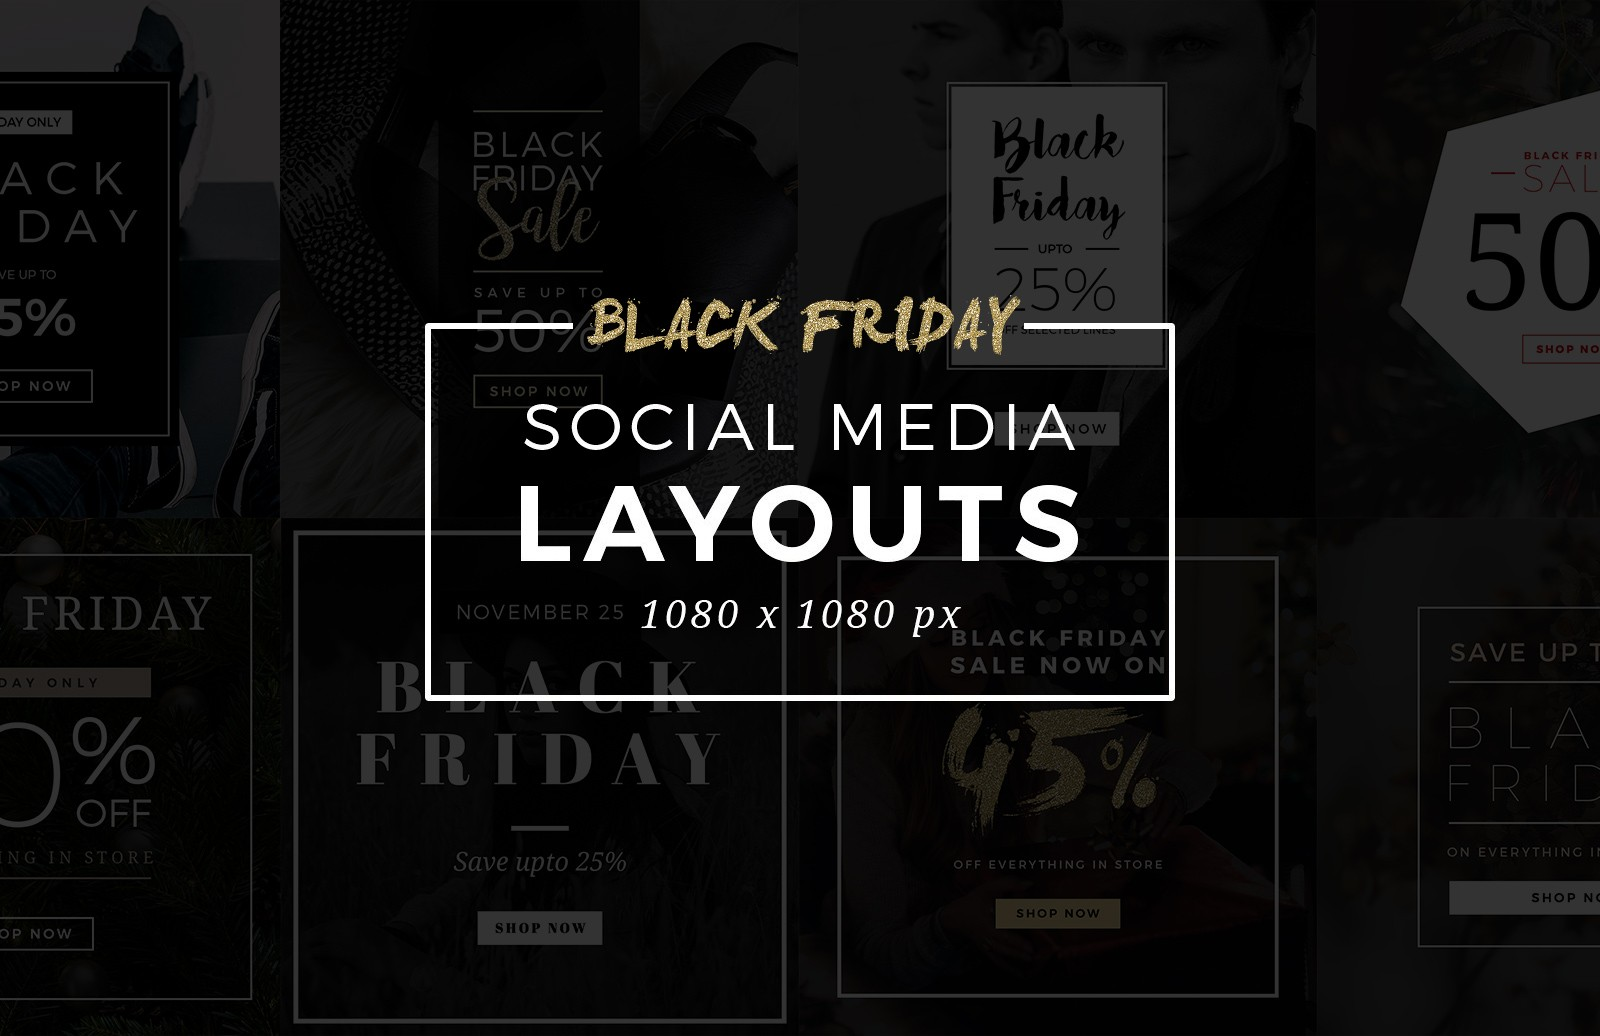 Black Friday Social Media Layouts 1